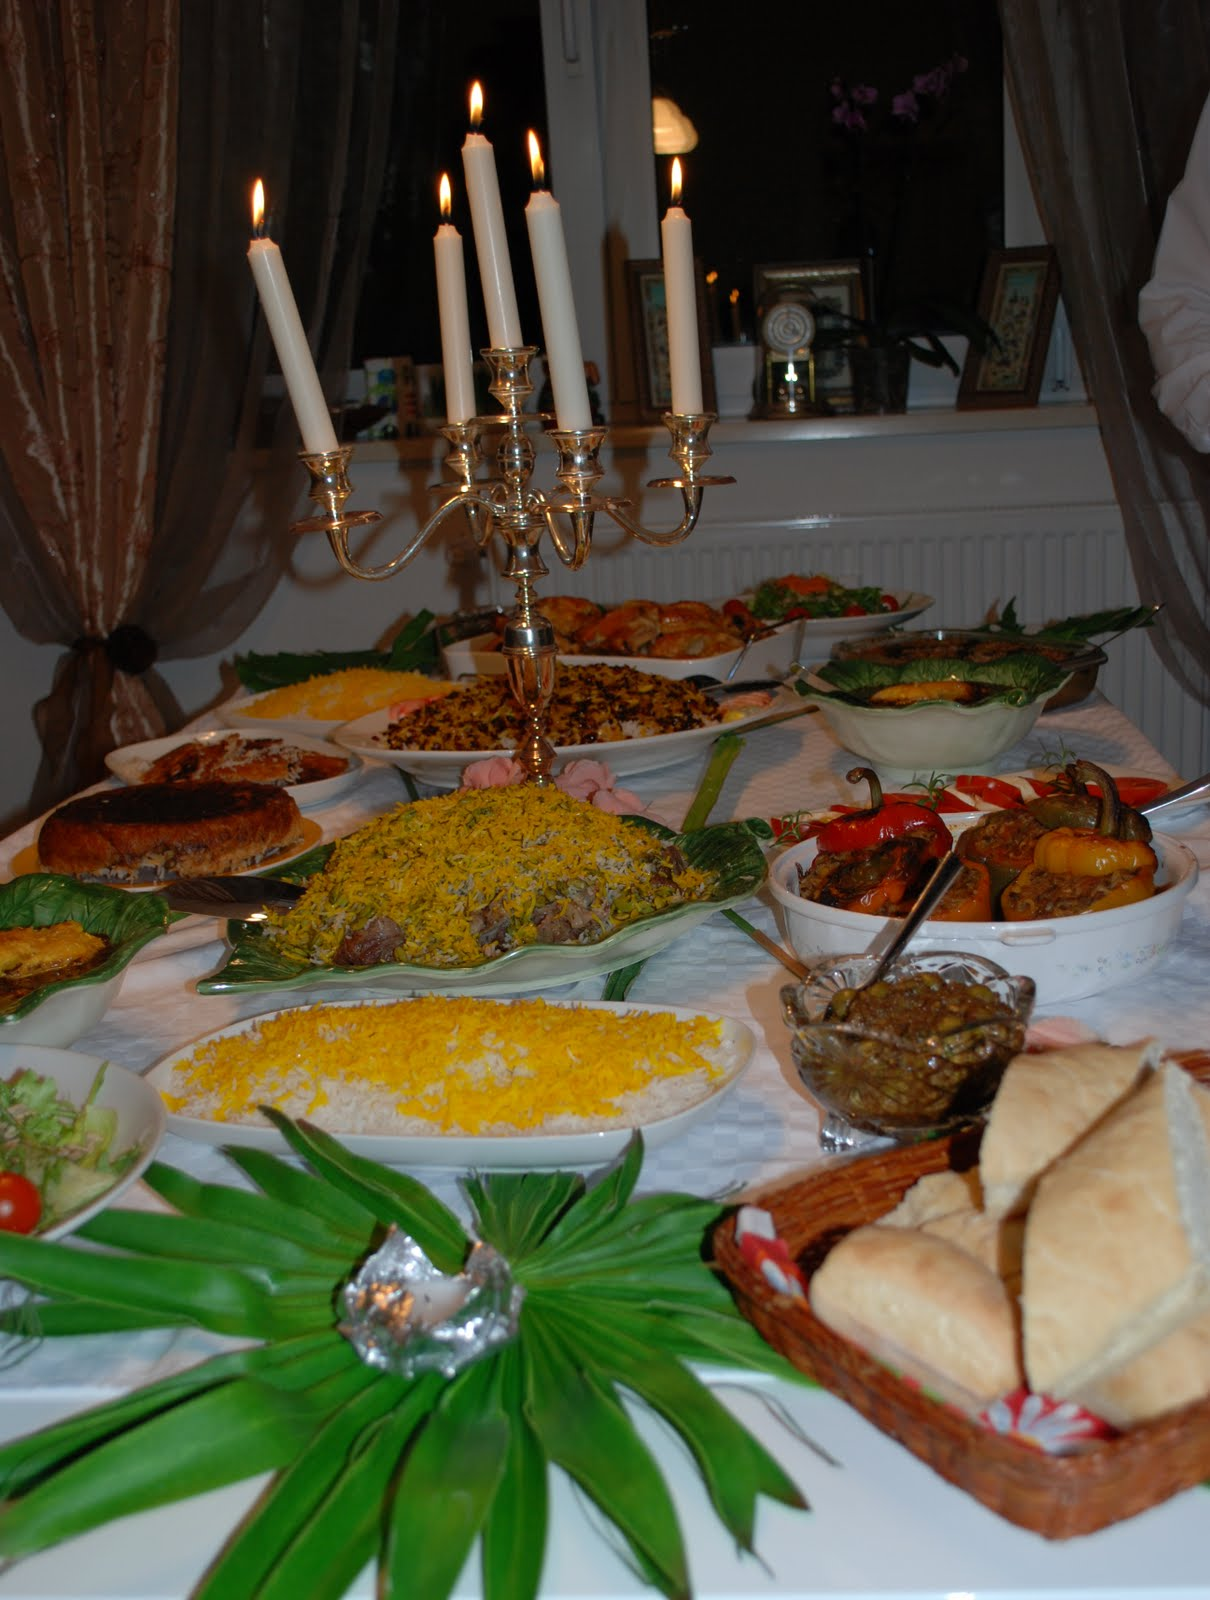 میز شام http://me-chef.blogspot.com/2010/03/blog-post.html